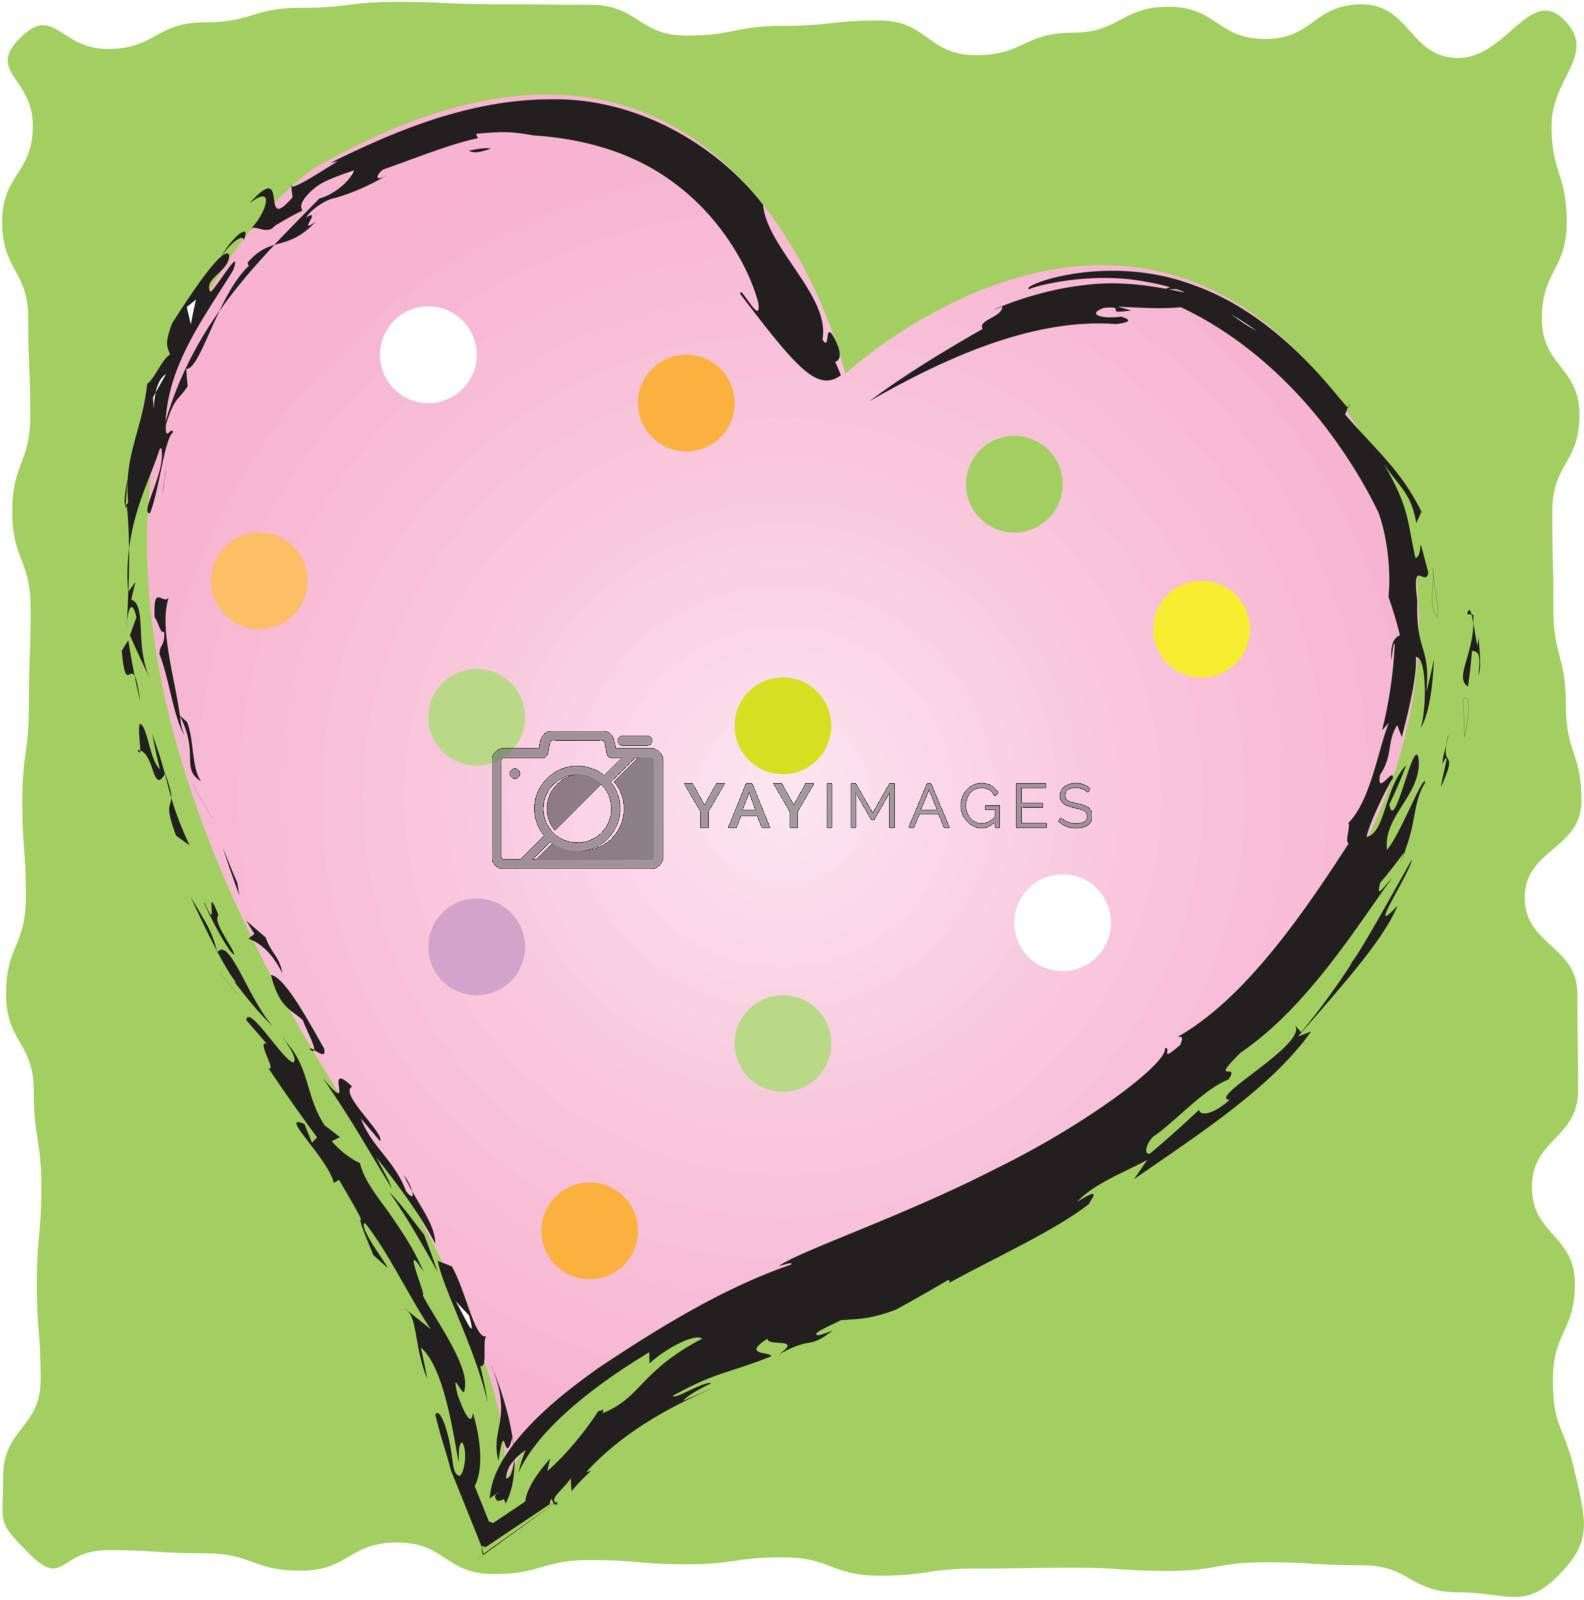 Polkadot Heart by ewilliamsdesign